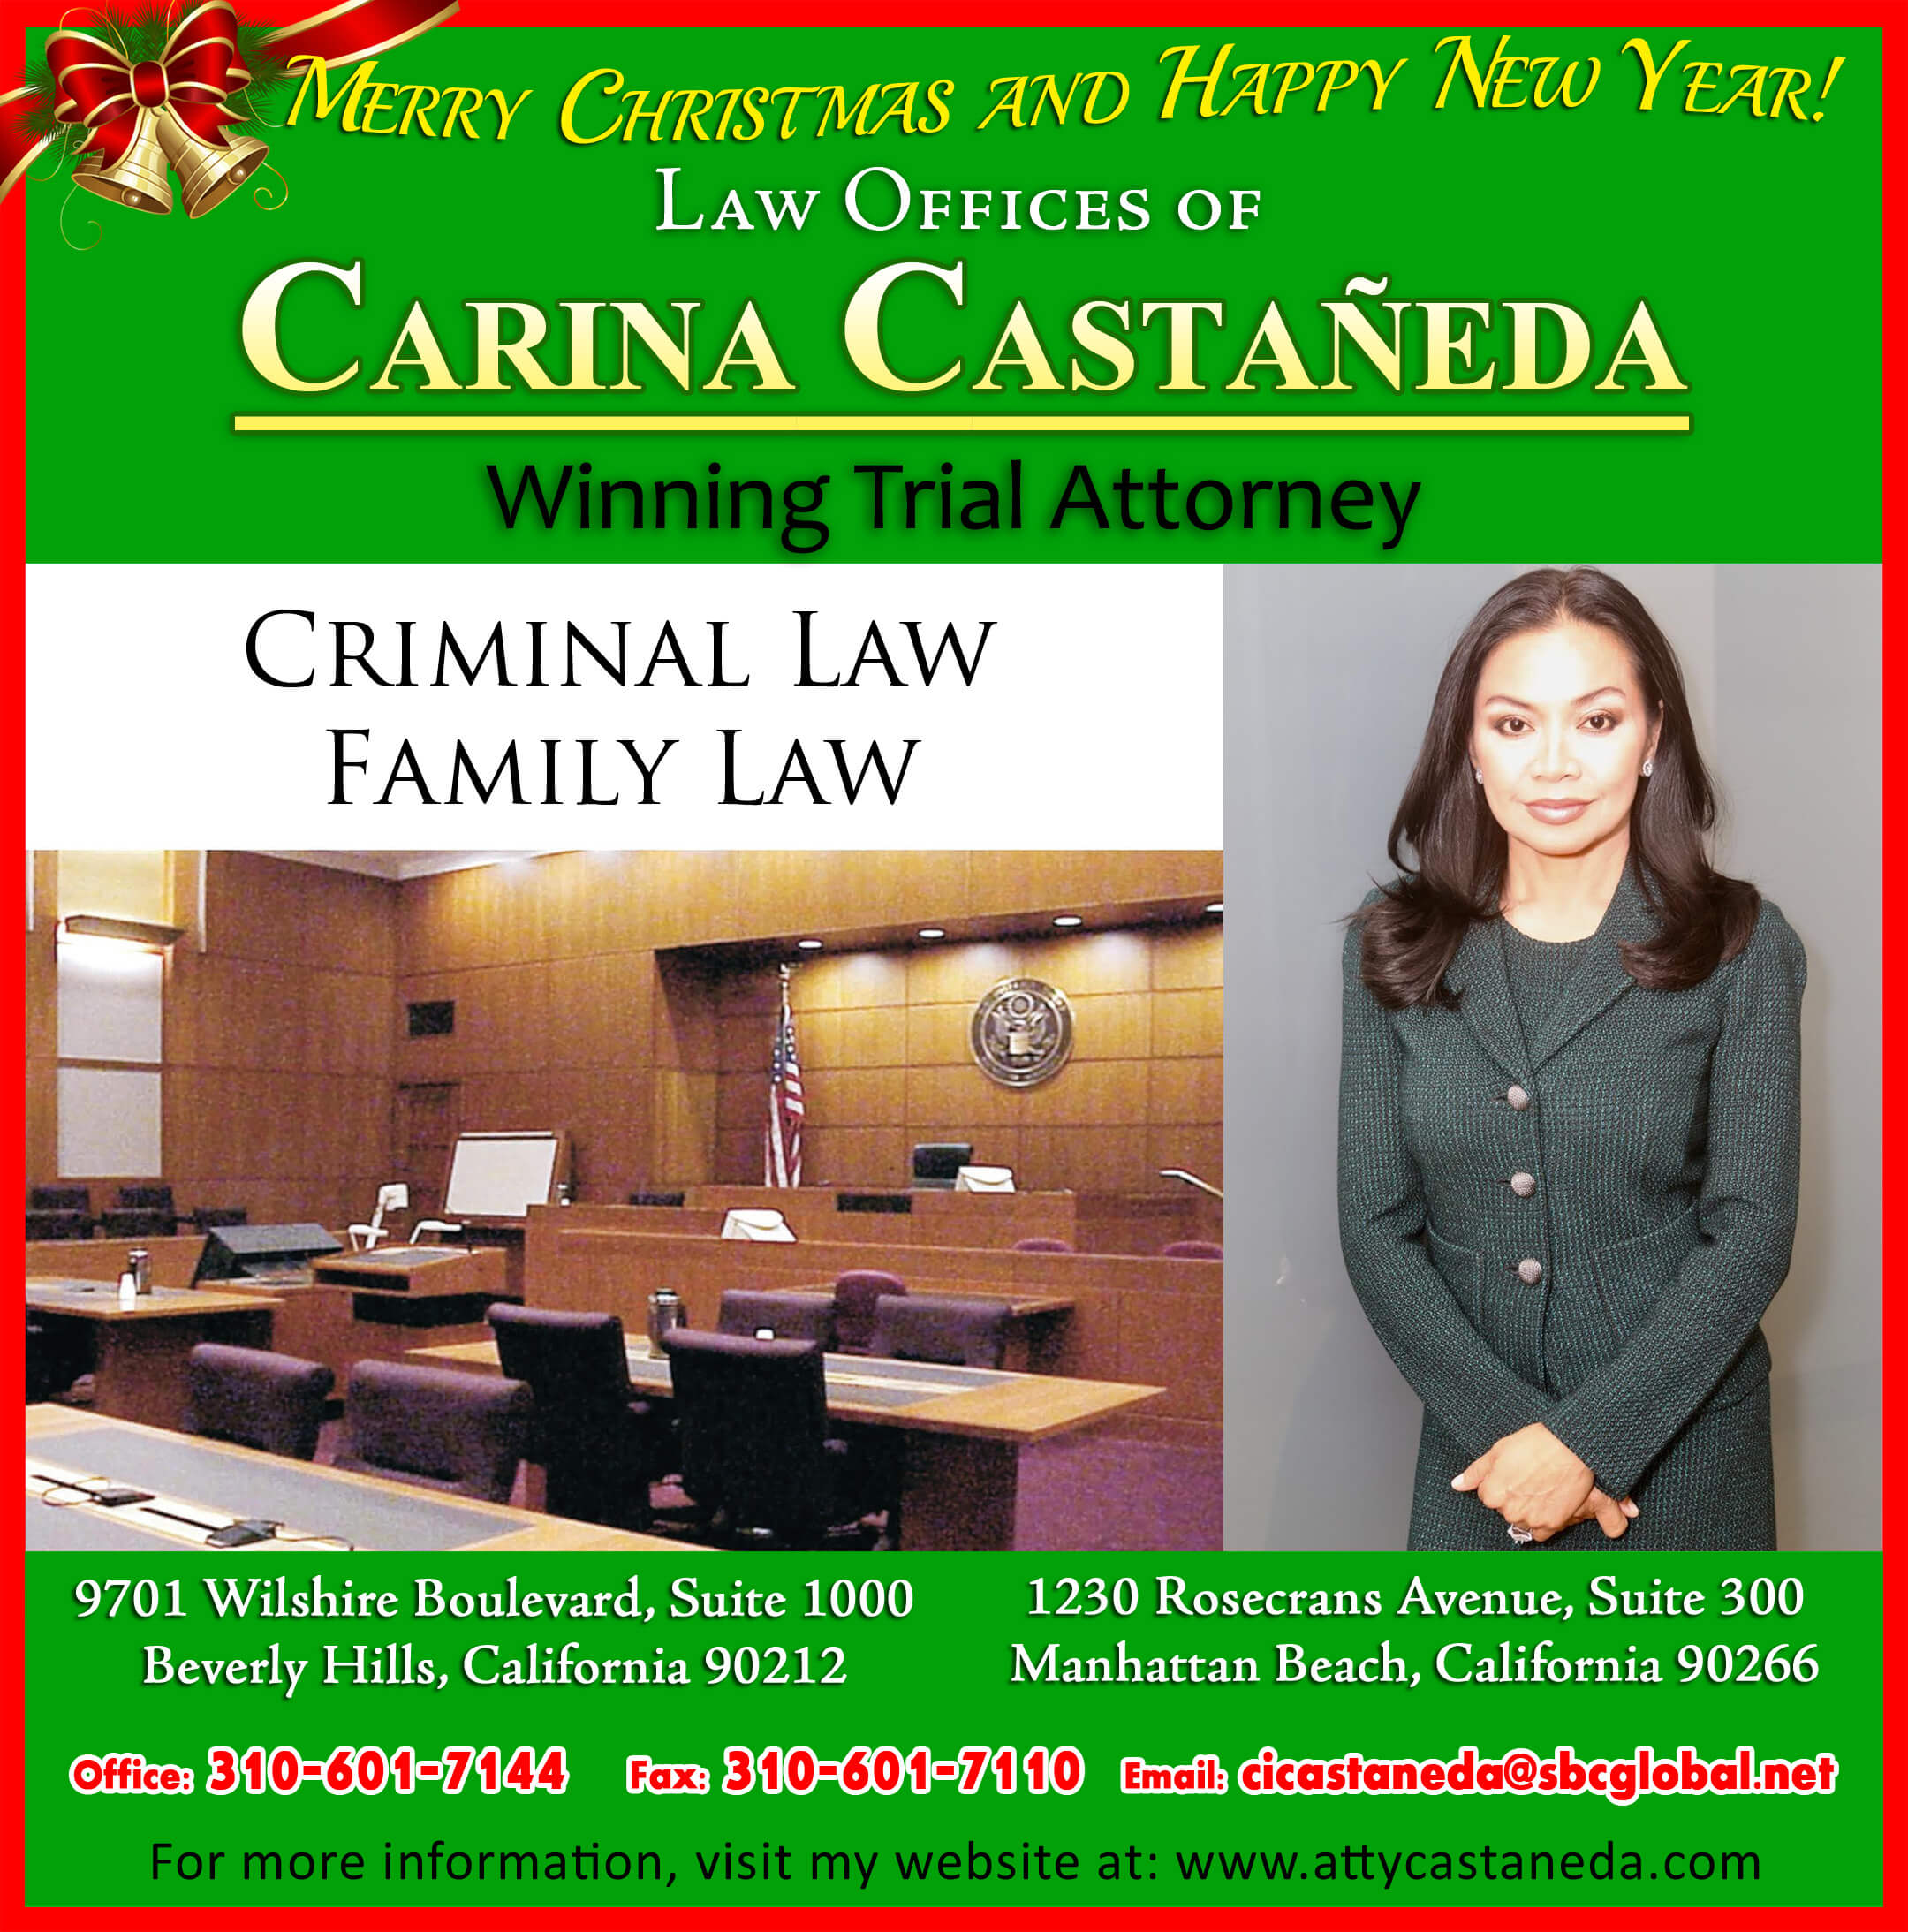 LAW OFFICE OF CARINA CASTANEDA AD copy